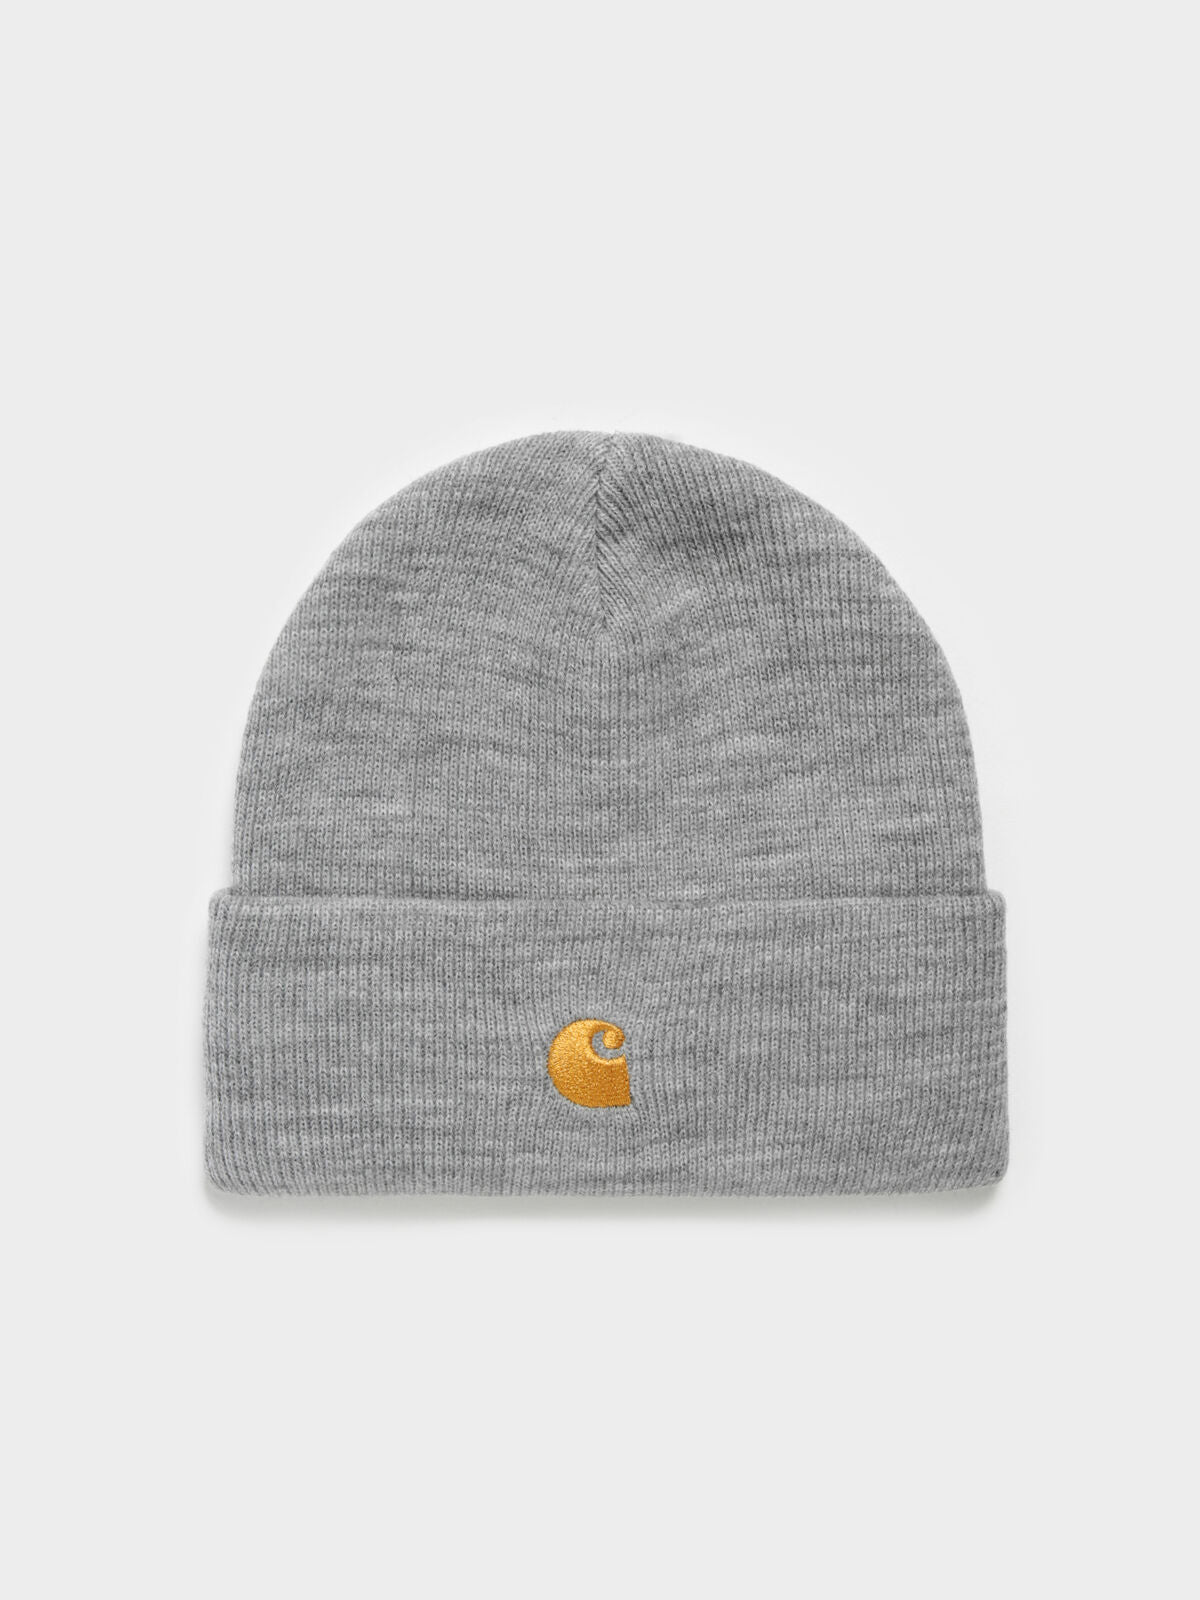 Chase Beanie in Grey & Gold